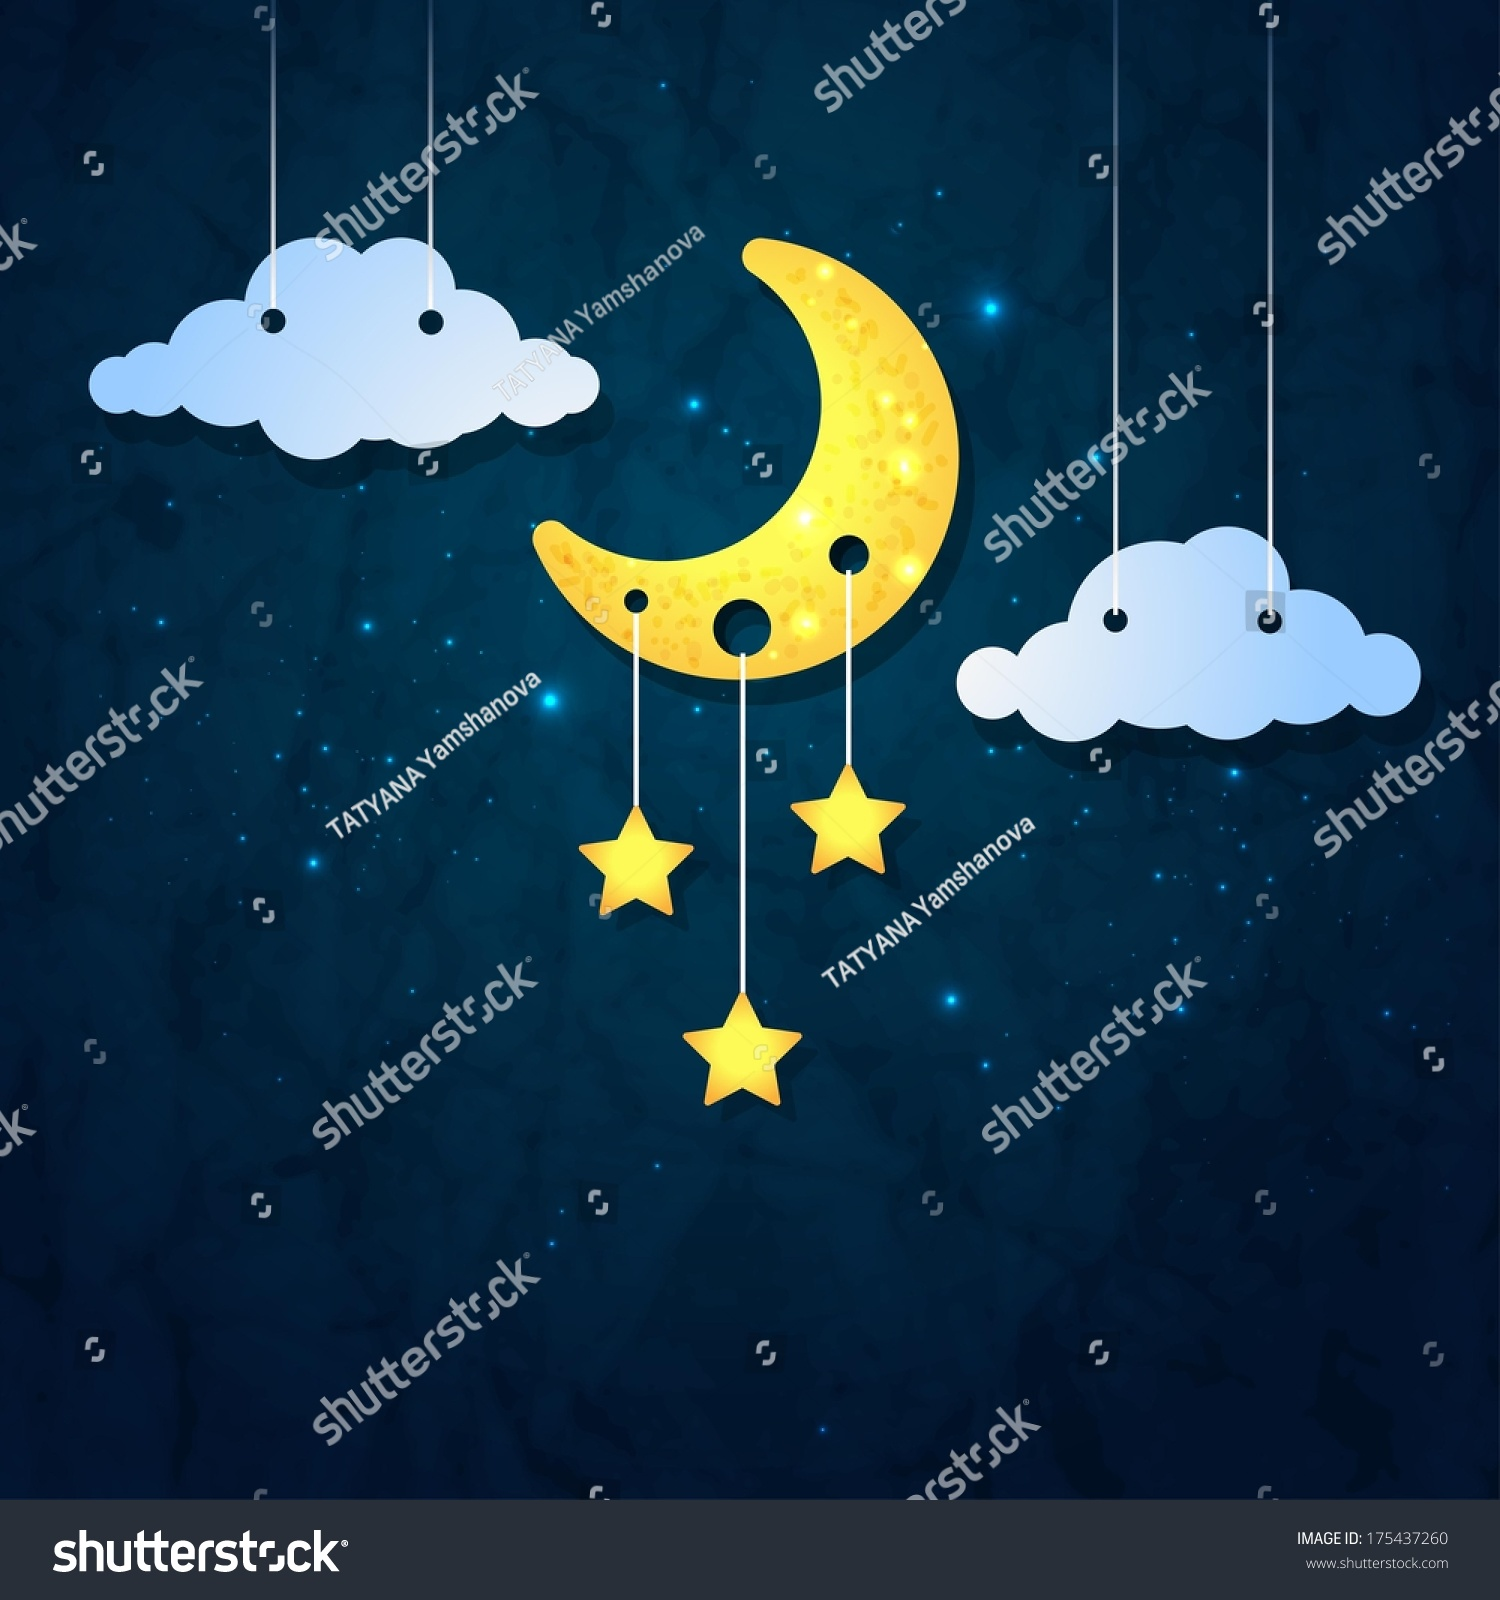 moon clouds stars sweet dreams wallpaper stock vector (royalty free